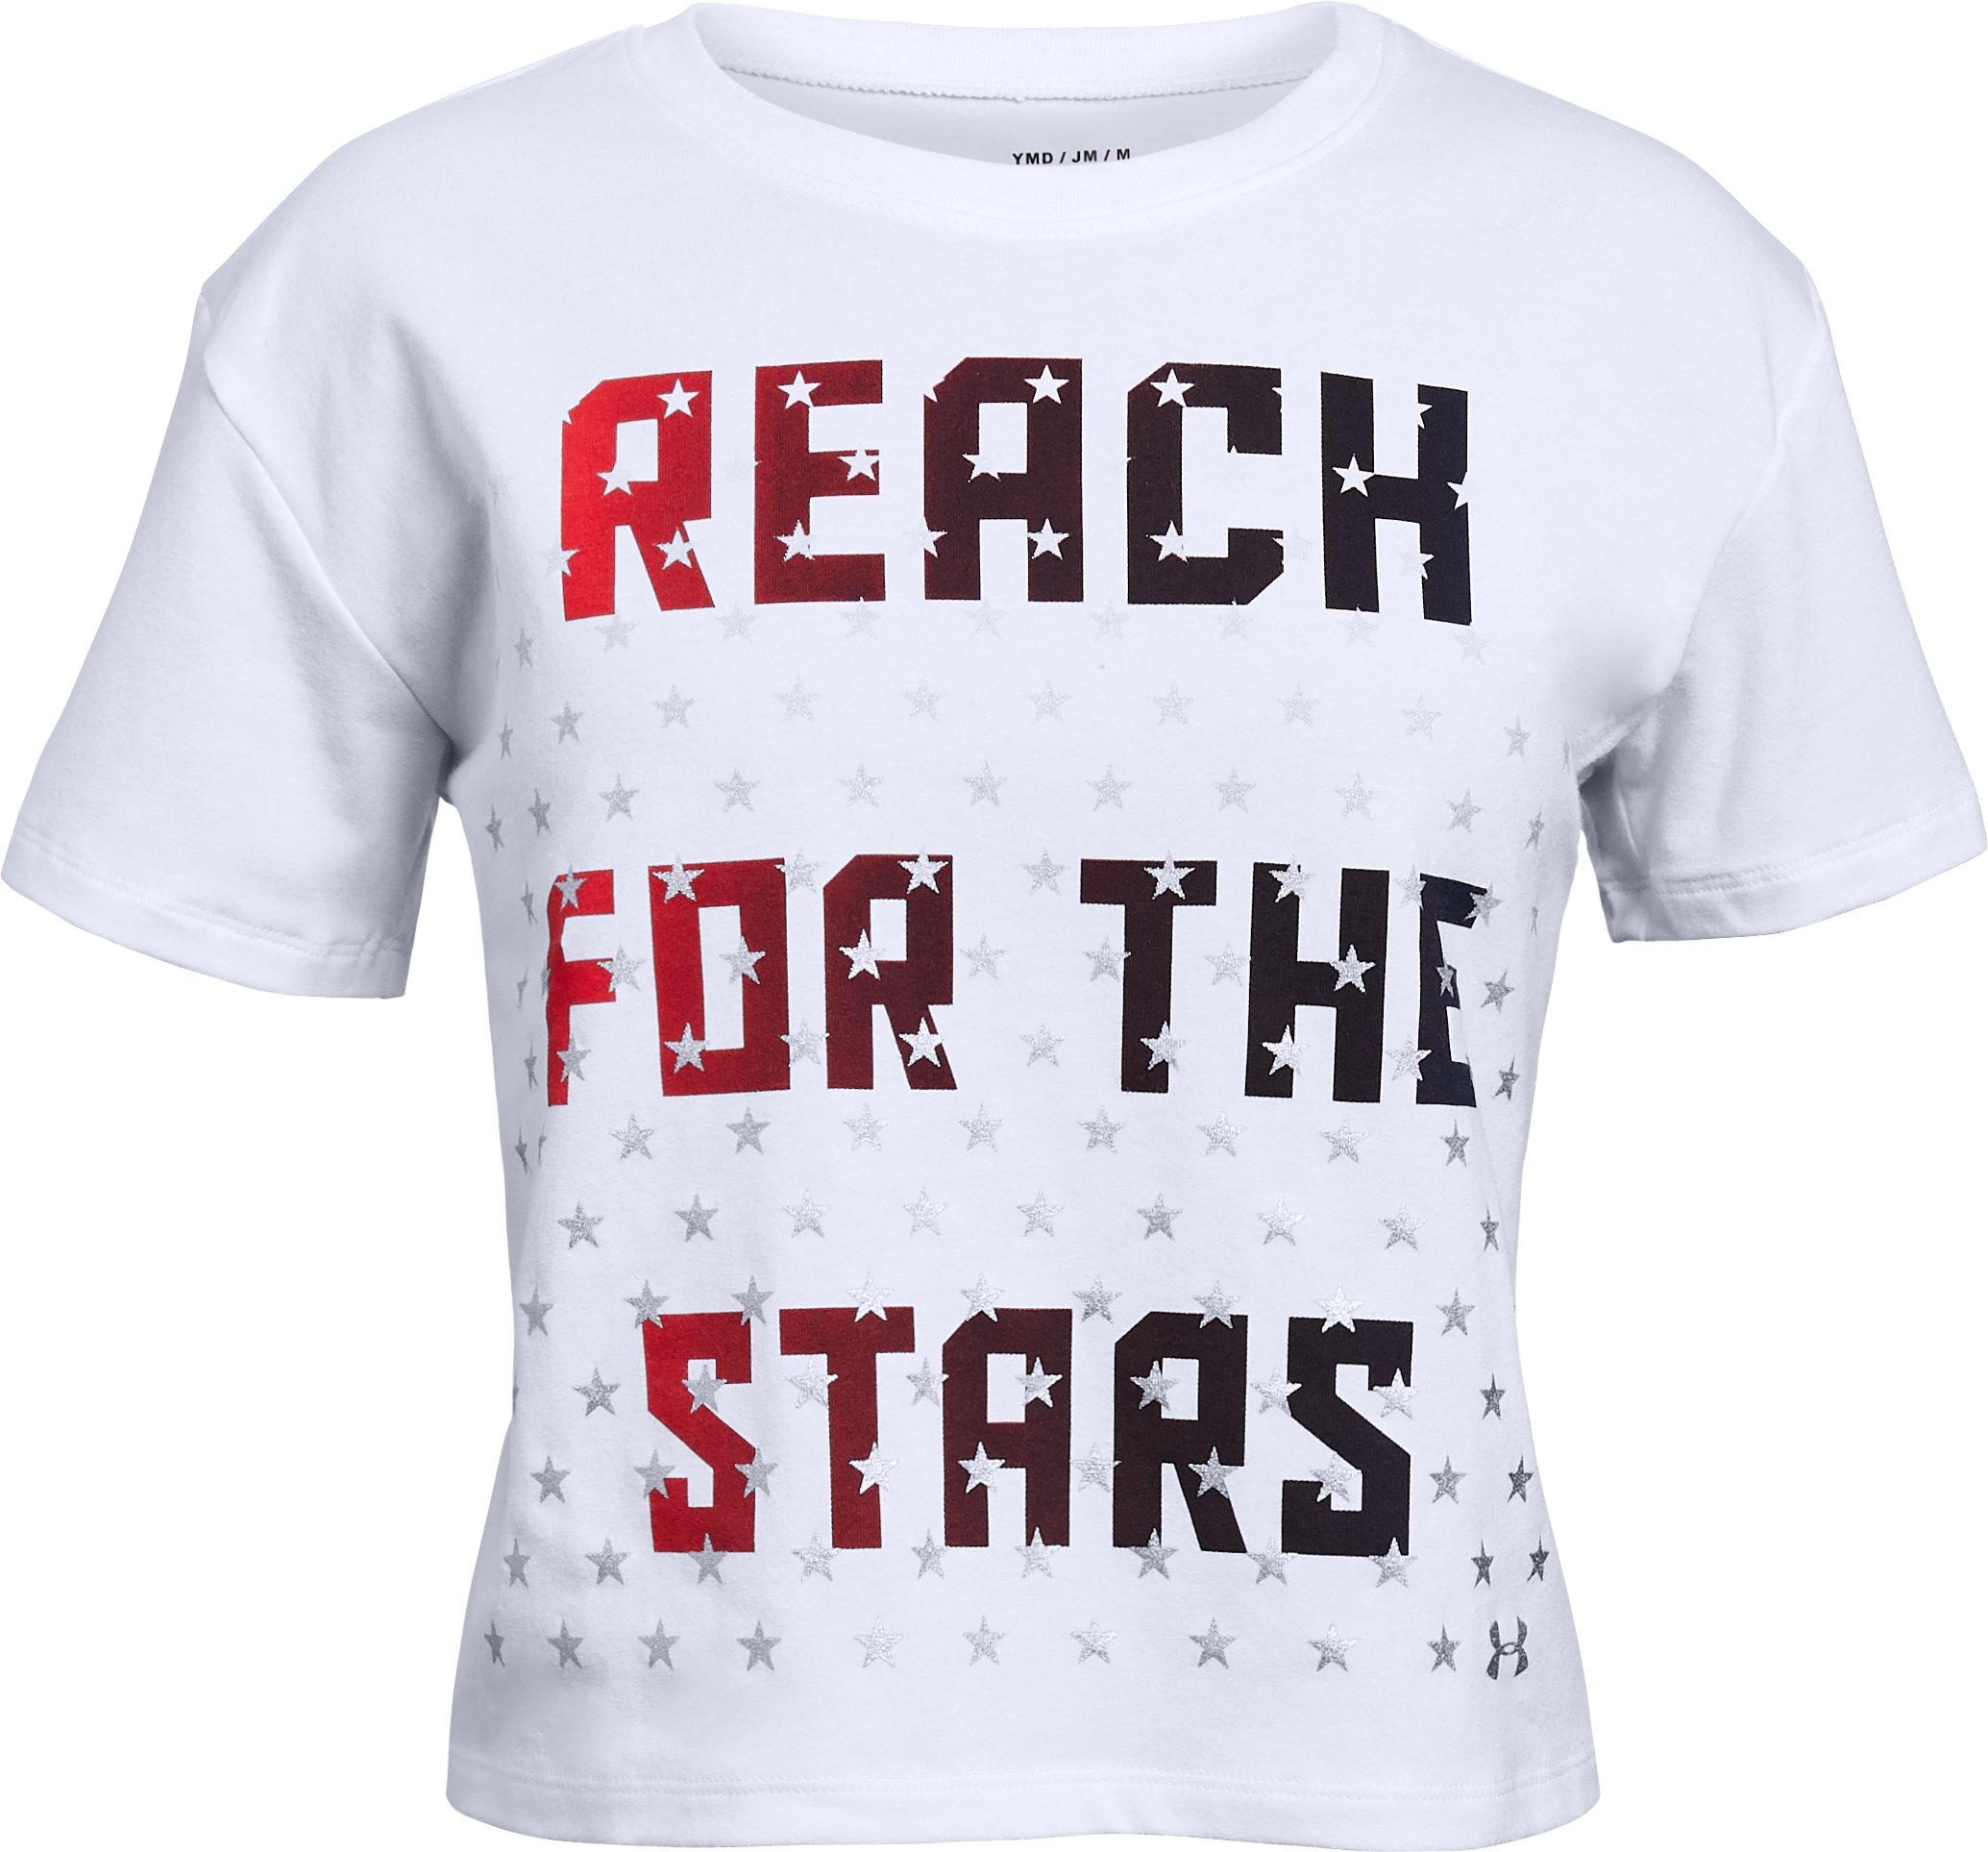 Girls' UA USA Reach Stars T-Shirt 1 Color $19.99